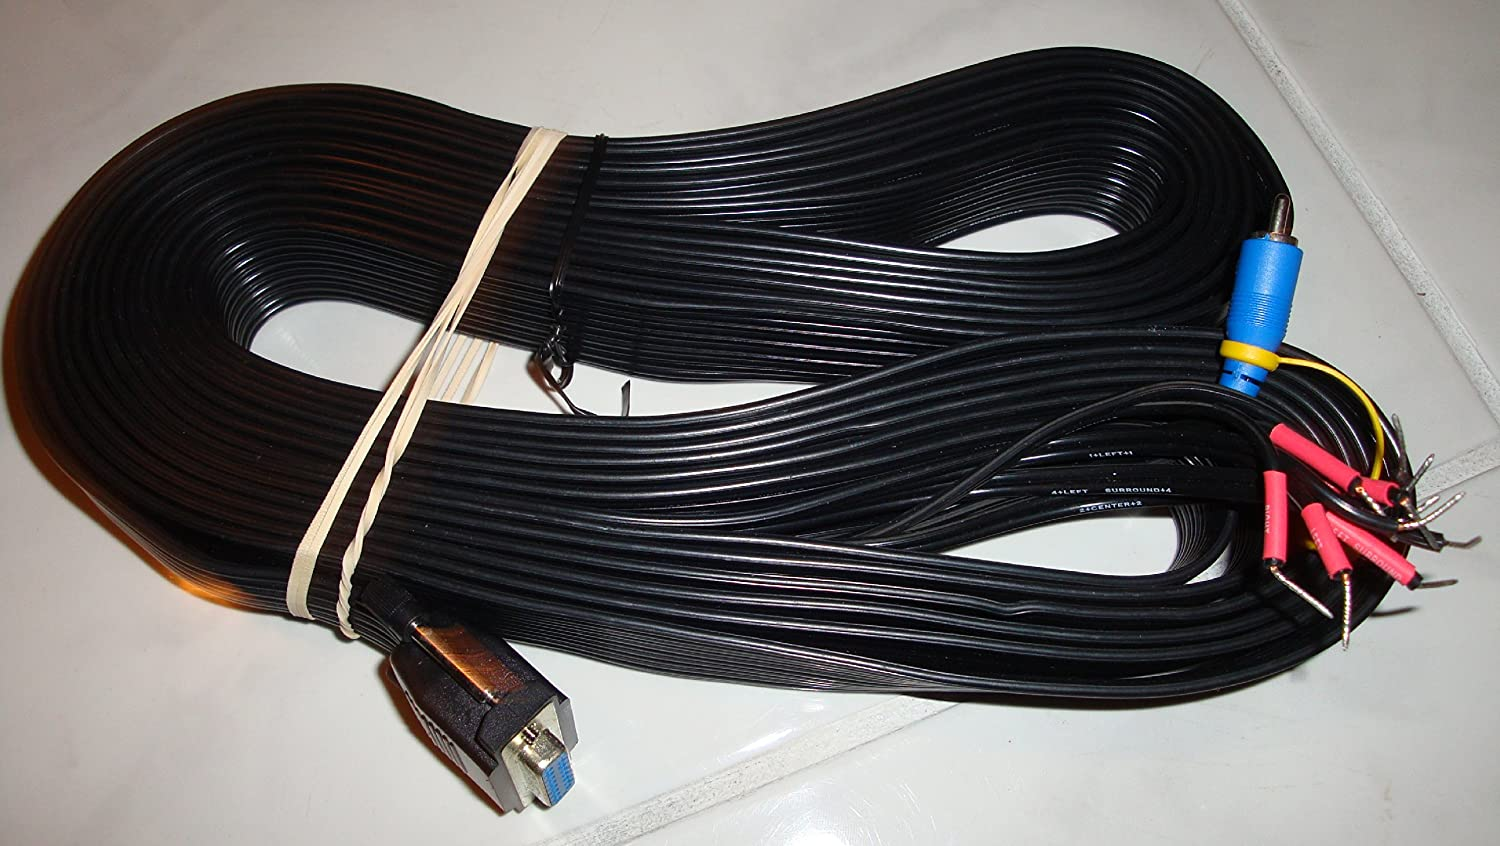 91VP4Uej%2BCL._SL1500_ amazon com bose audio cable 15 pin from subwoofer to receiver  at webbmarketing.co